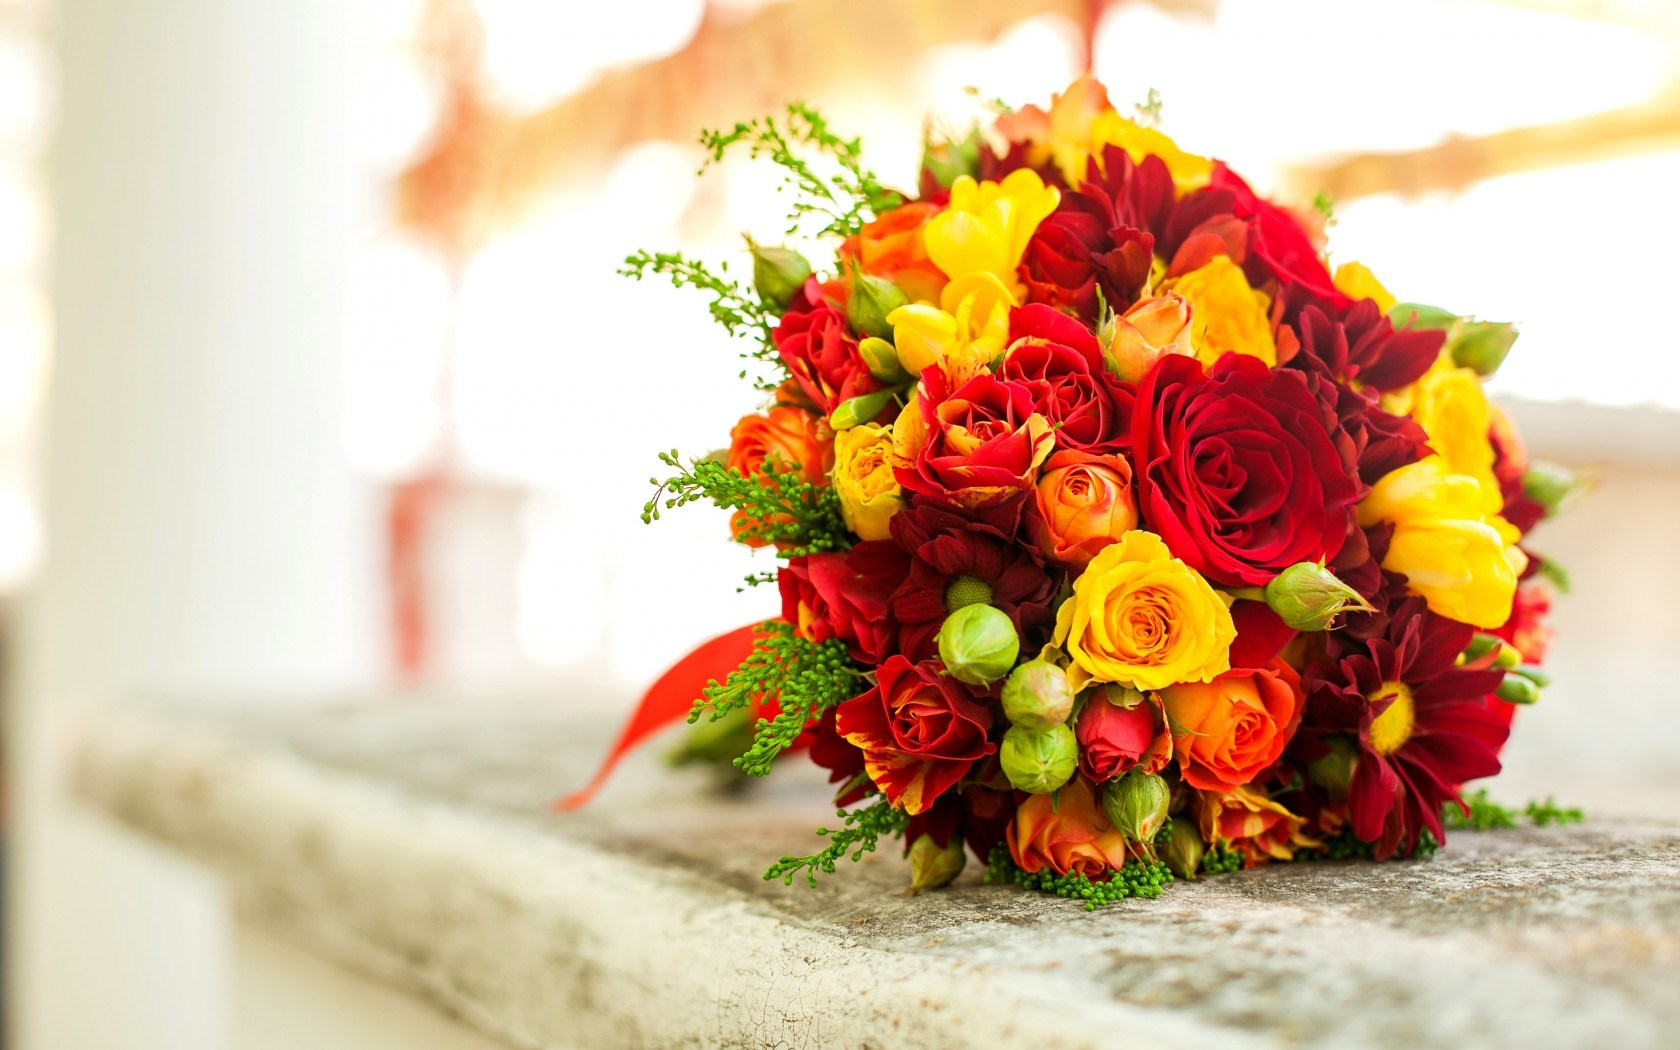 15 wonderful hd flower bouquet wallpapers - Bouquet of red roses hd images ...